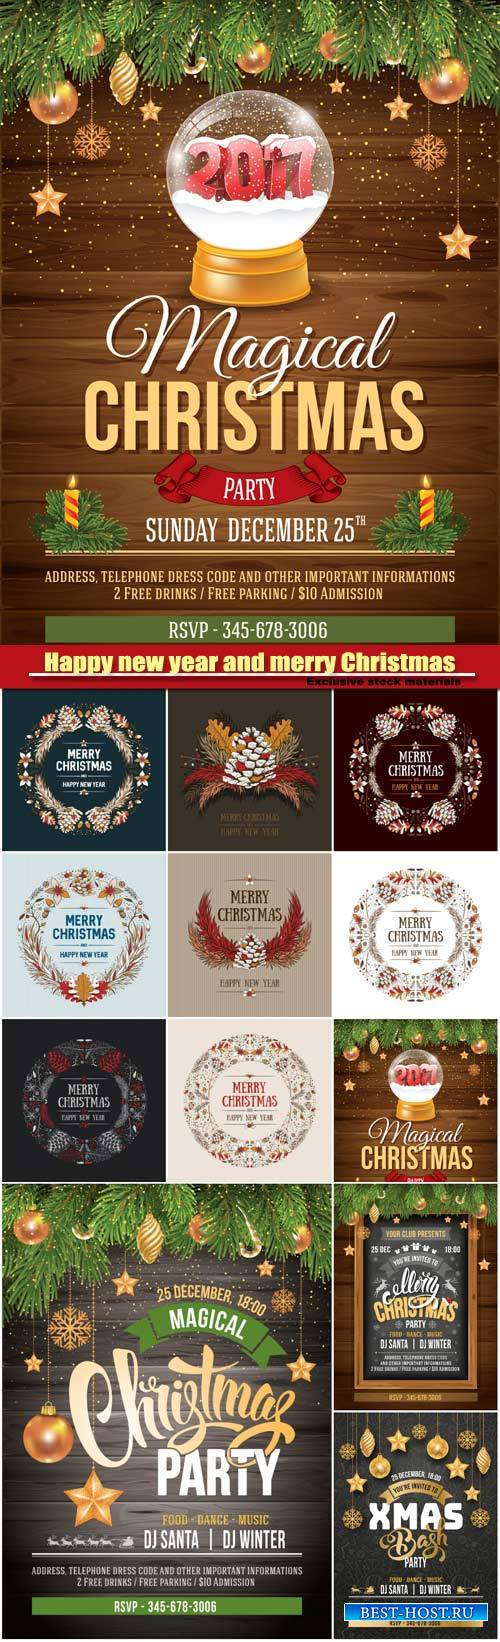 Christmas design, luxury template design for Christmas party